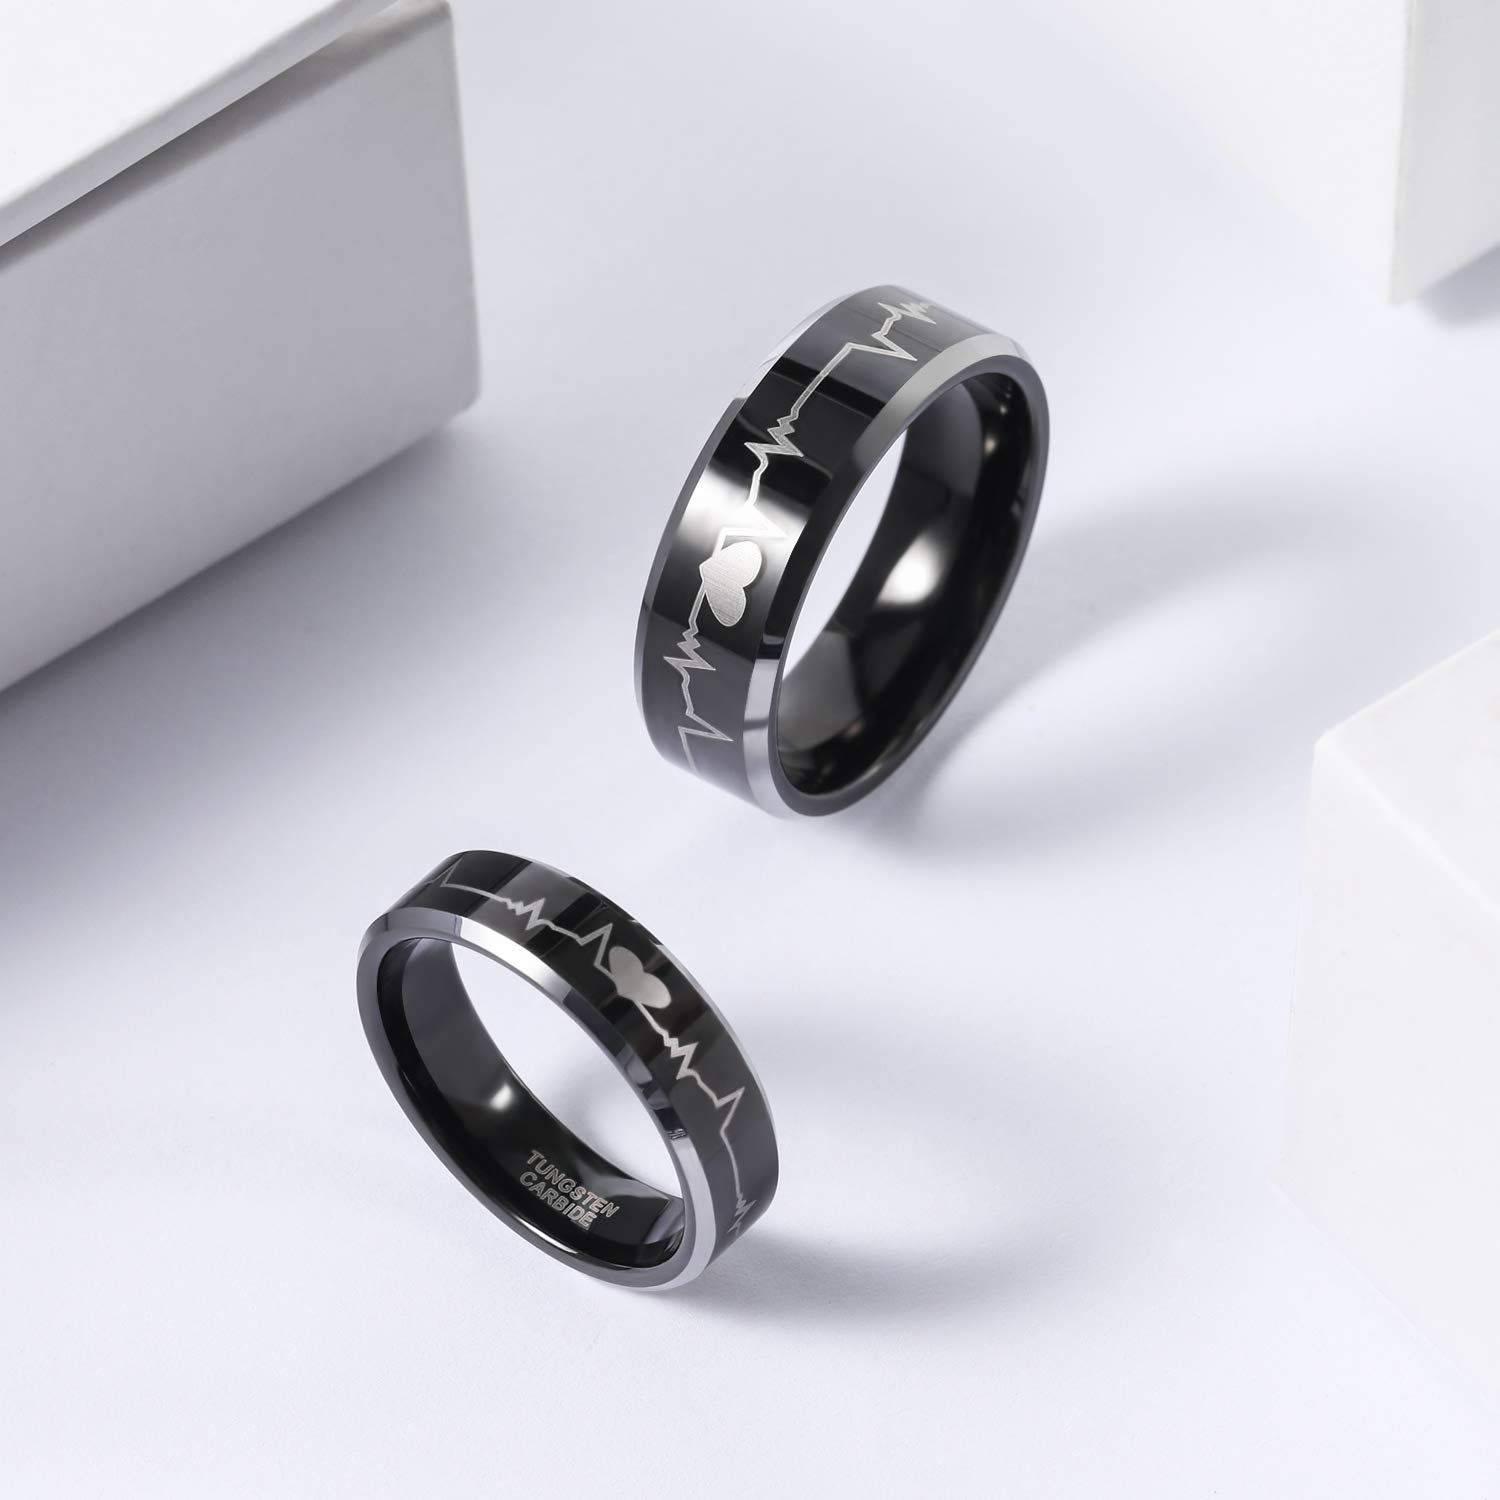 Black Tungsten Carbide Astronomy Ring 8mm Wedding Band Anniversary Ring for Men and Women Size 13.5